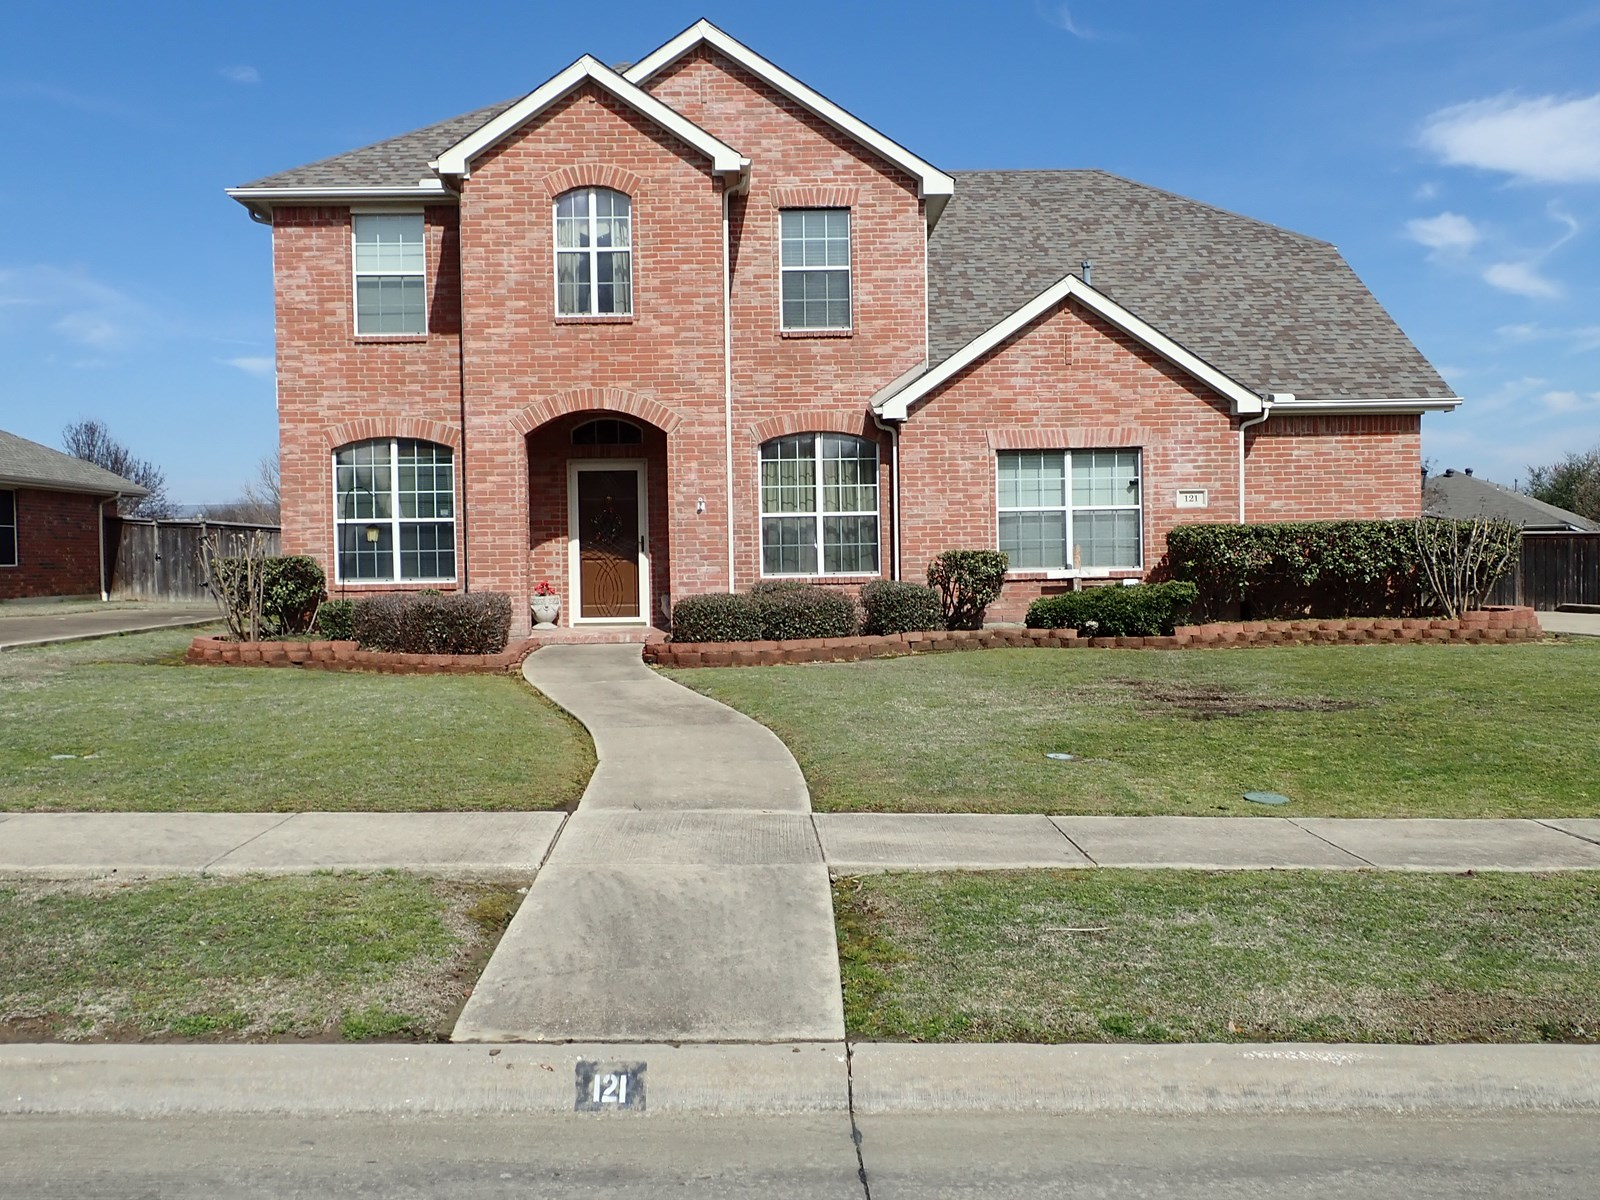 HOME FOR SALE IN TERRELL, TEXAS